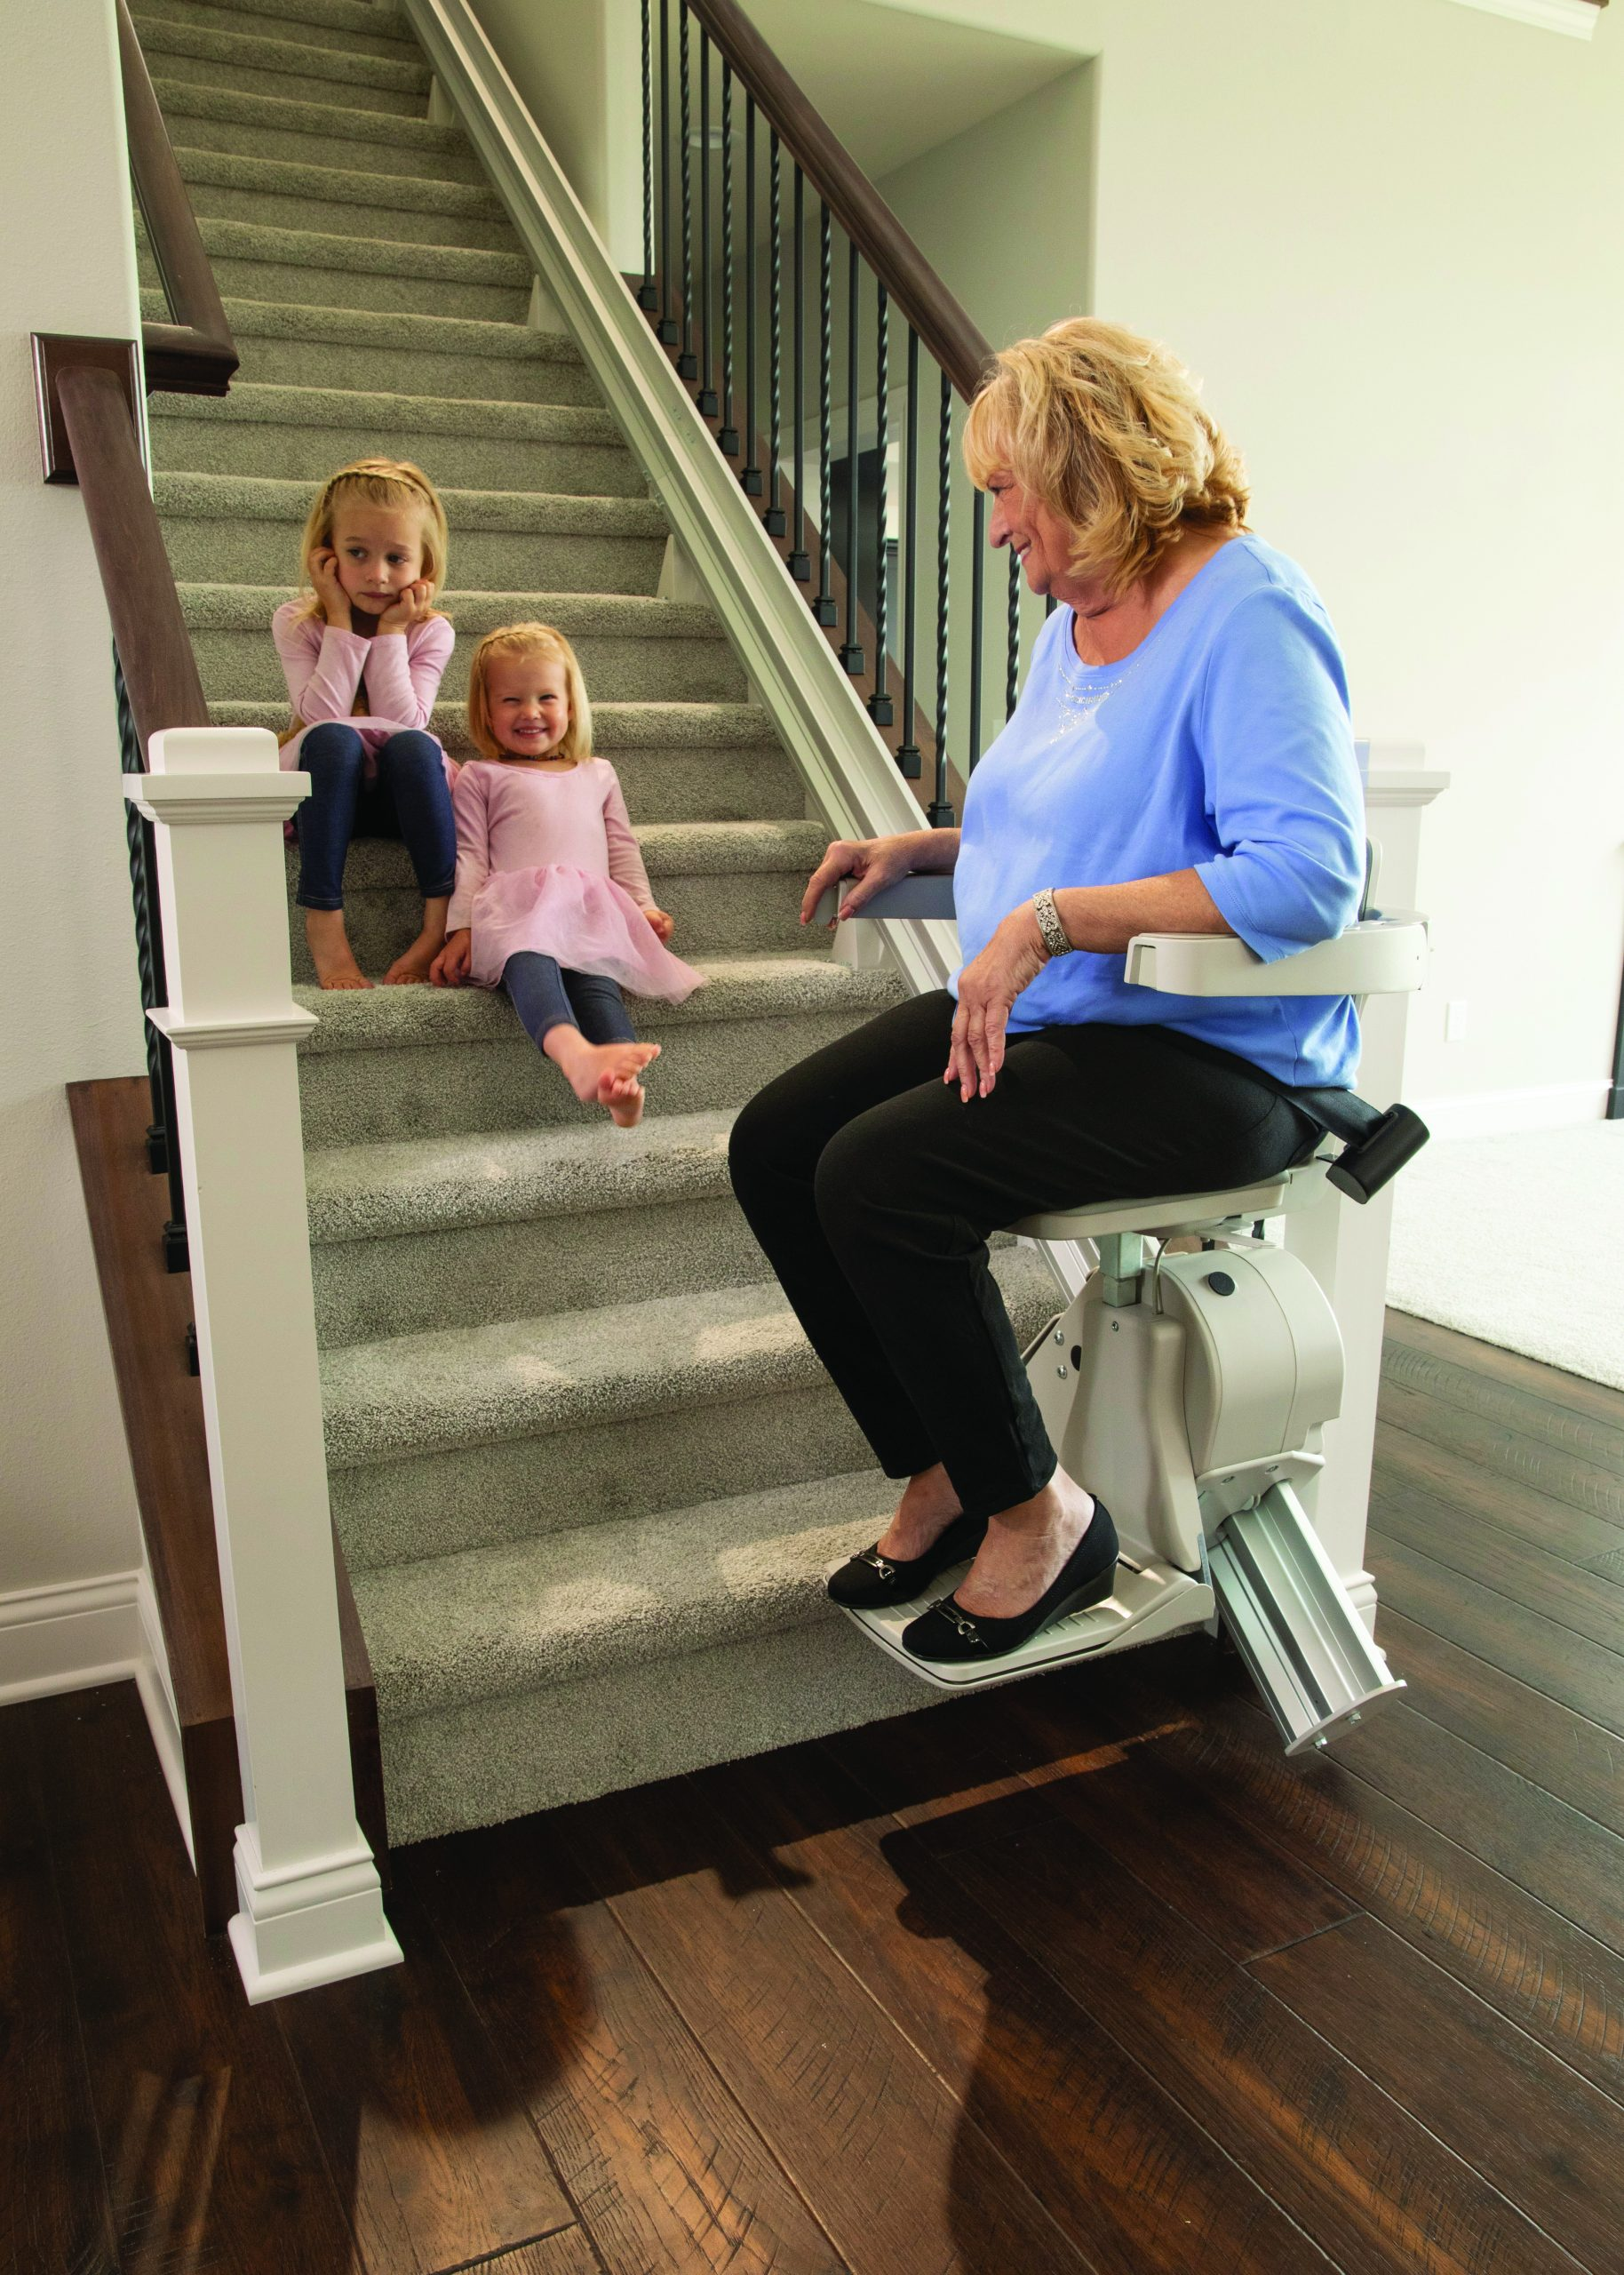 Grandmother using Bruno elan stair lift looking at grandchildren on stairs